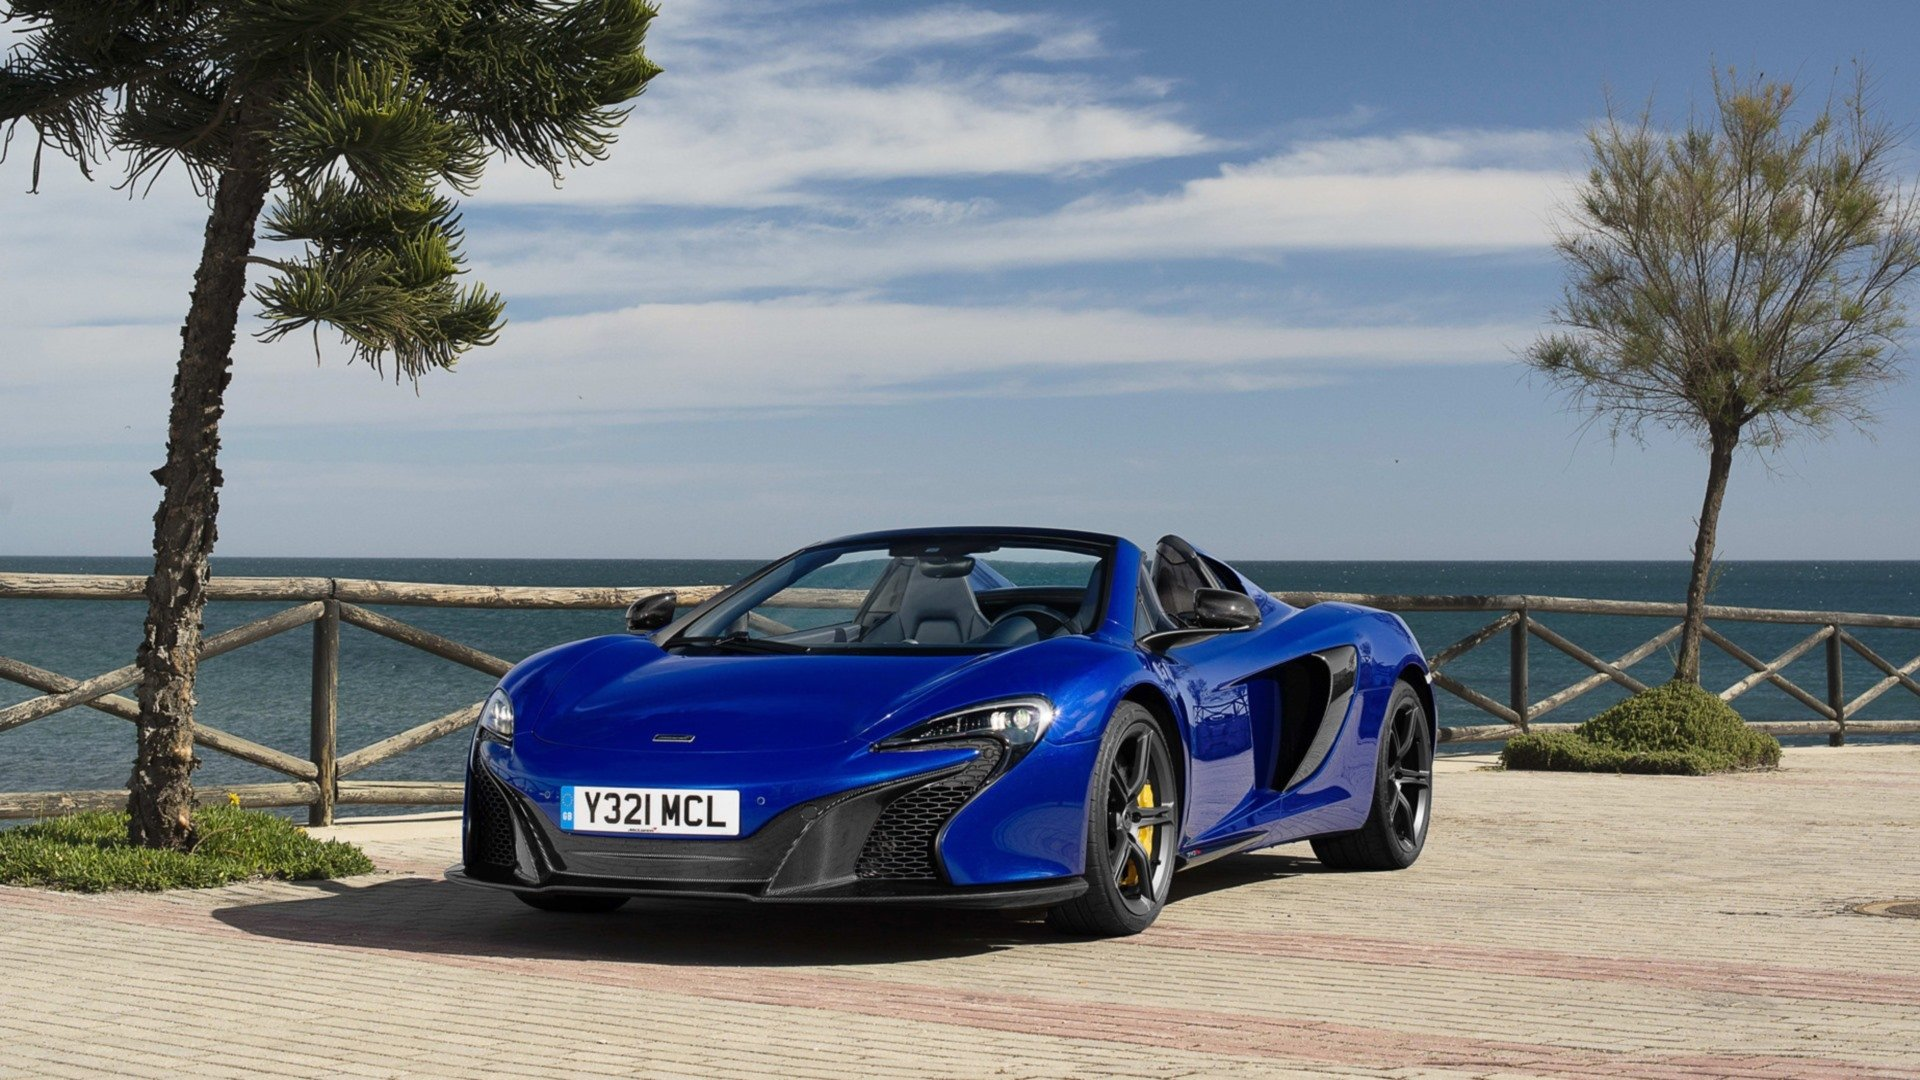 Vehicles - McLaren 650S Spider  Blue Car Supercar Car Vehicle McLaren McLaren 650S Wallpaper